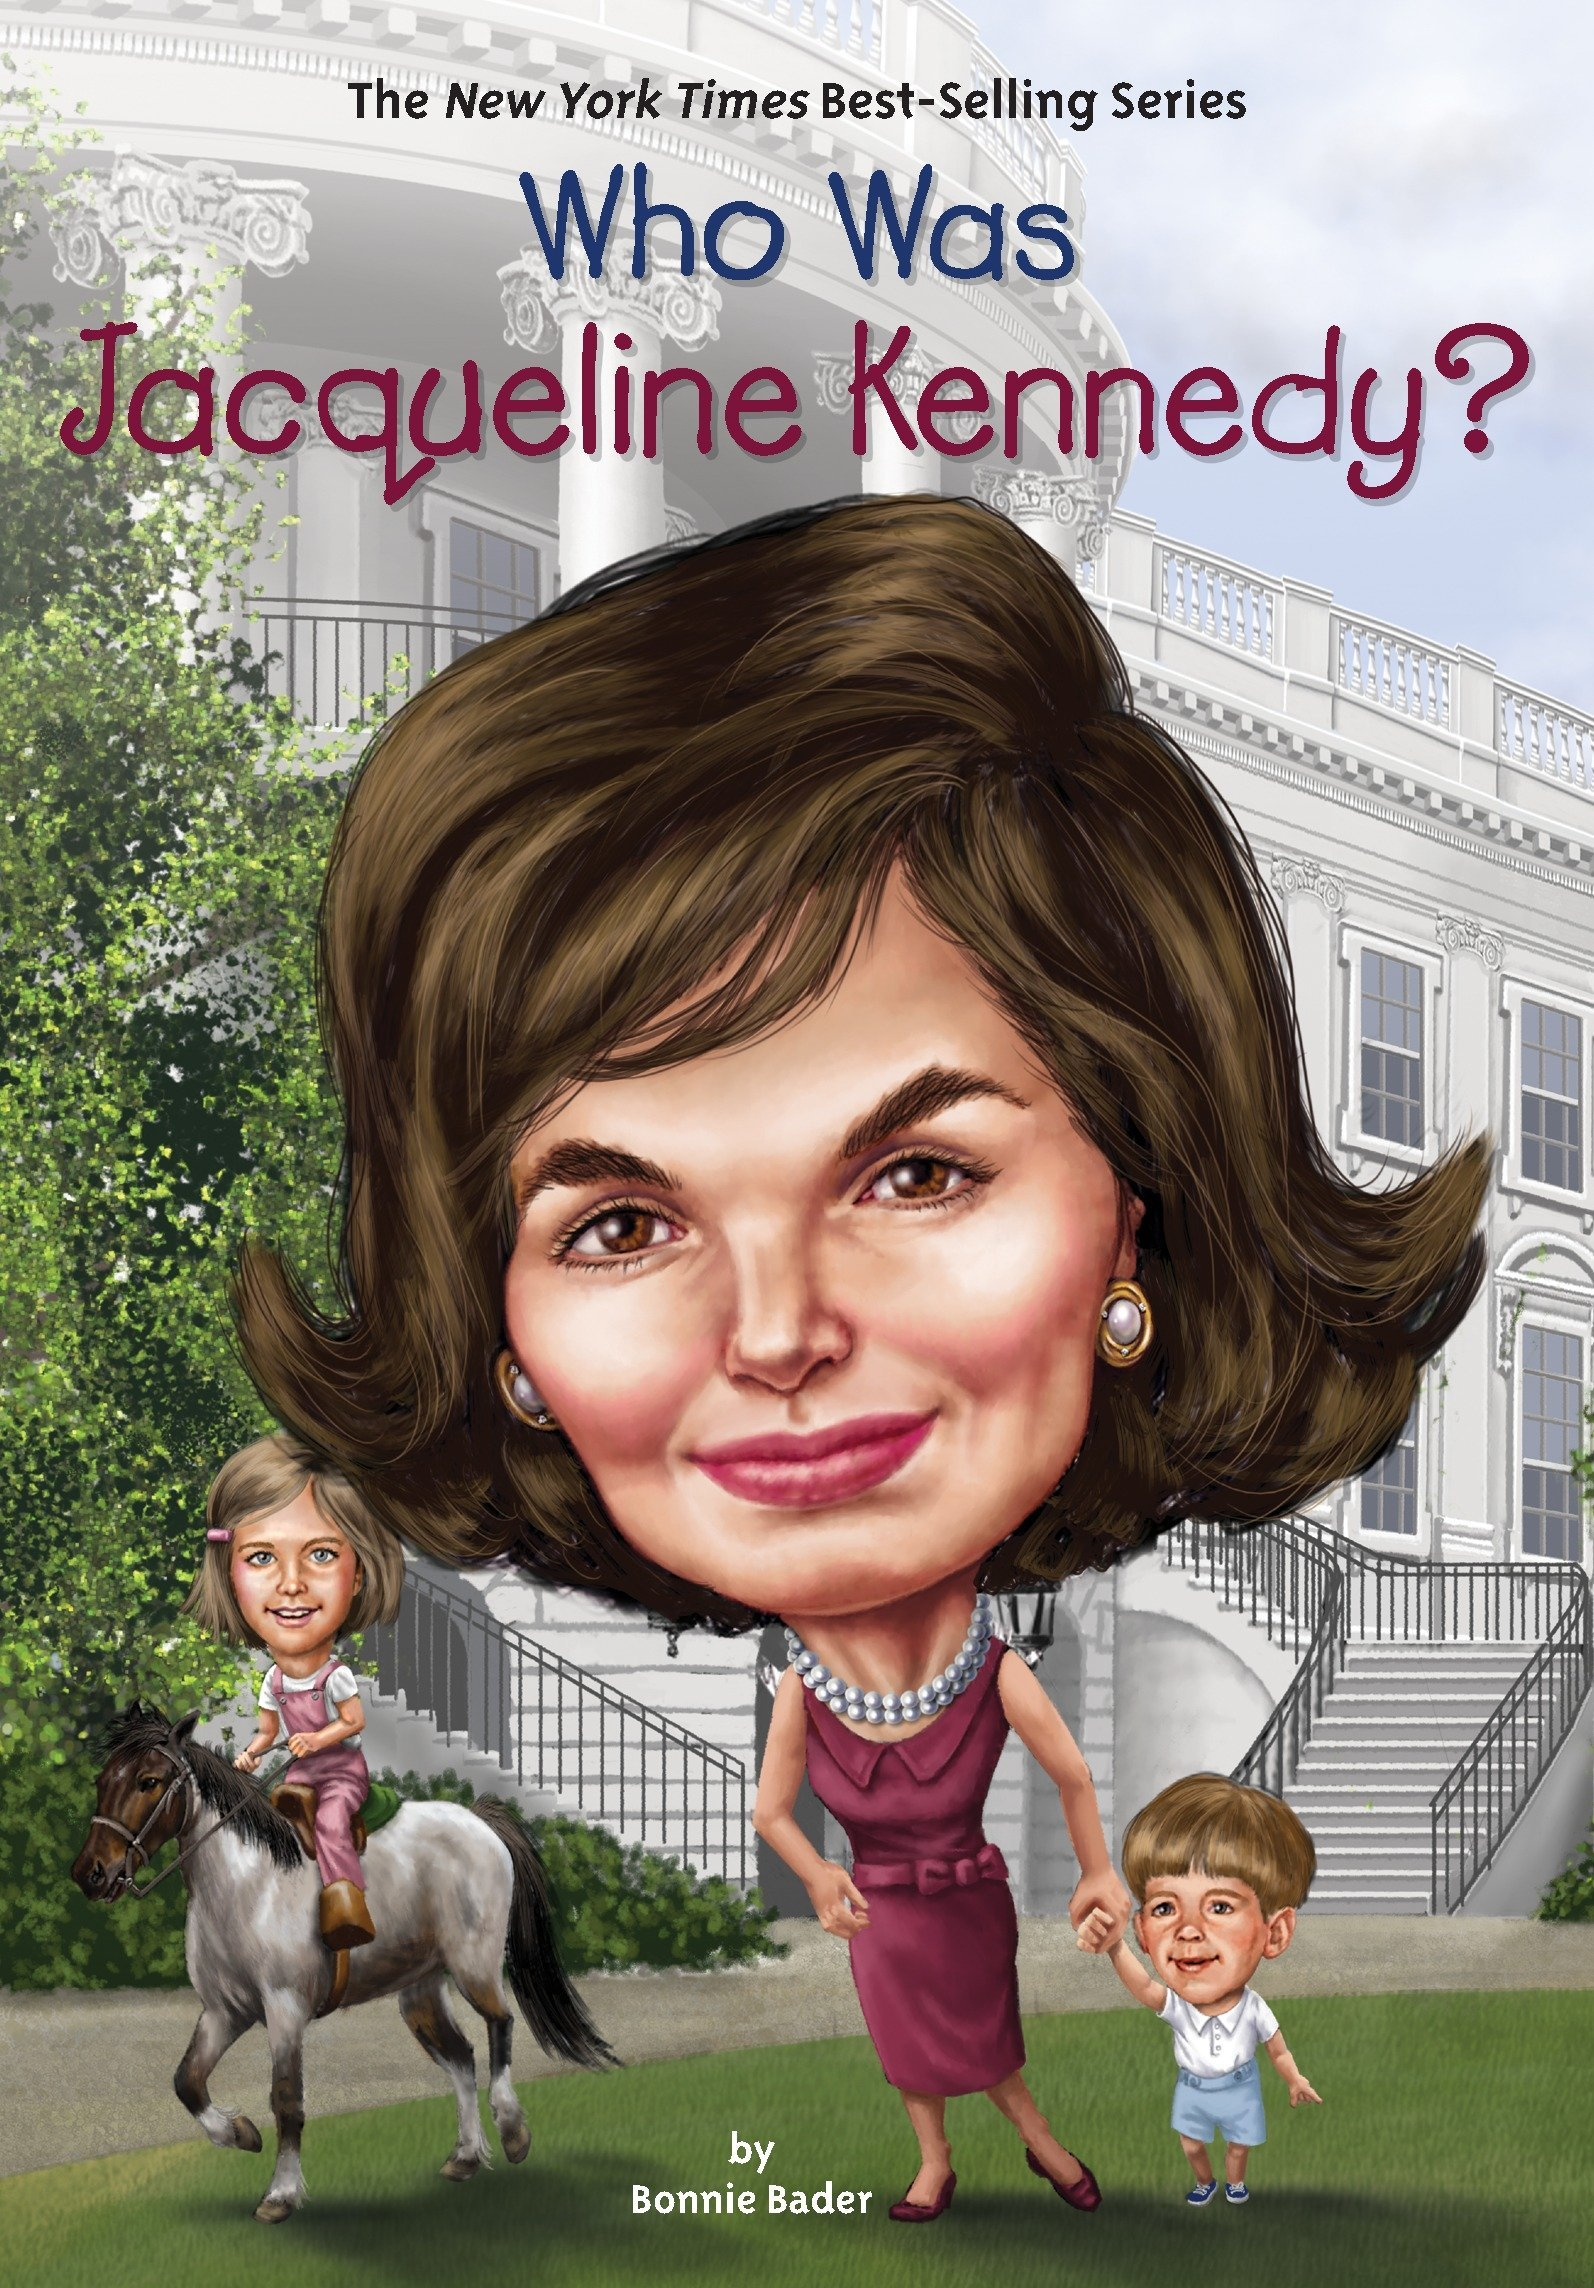 Who Was Jacqueline Kennedy? Paperback – December 6, 2016 Bonnie Bader Who HQ Joseph J. M. Qiu Penguin Workshop